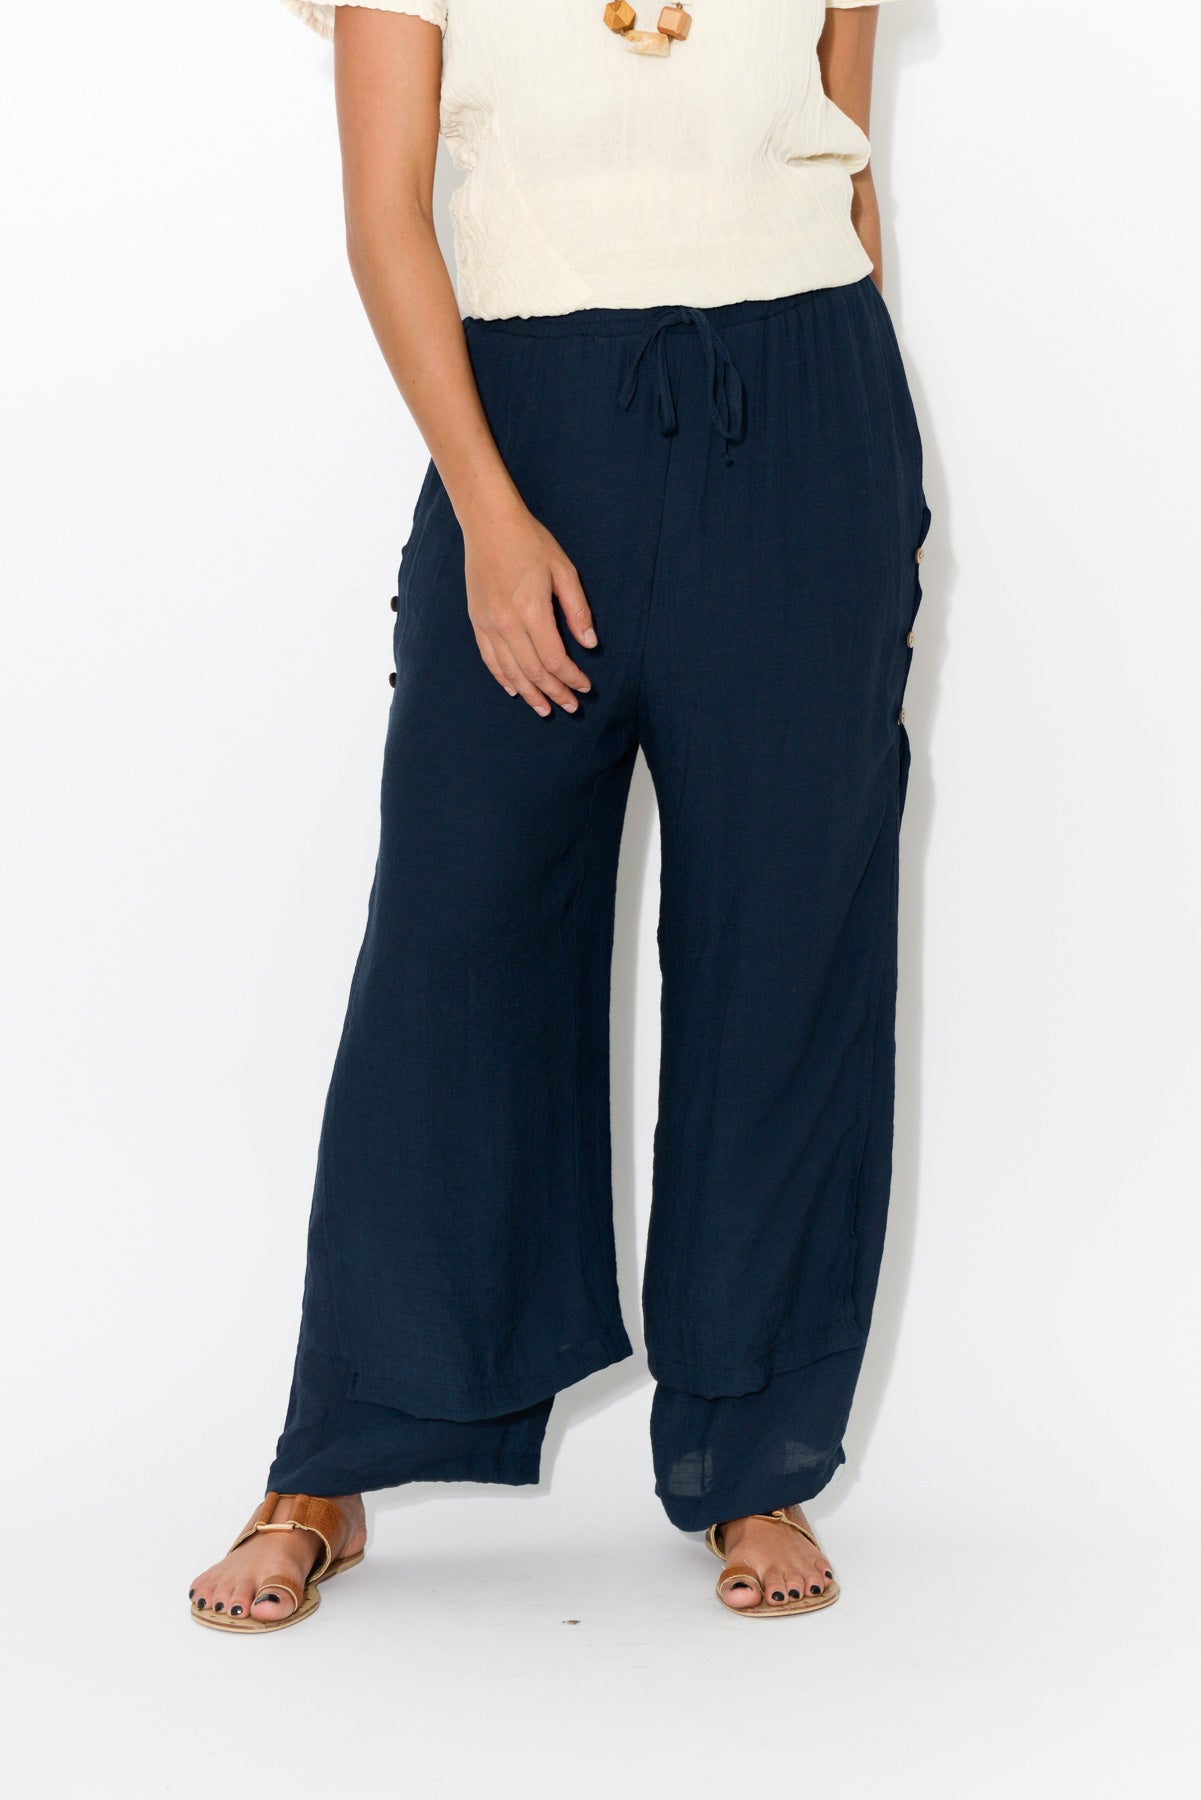 Navy Layered Wide Leg Pant - Blue Bungalow